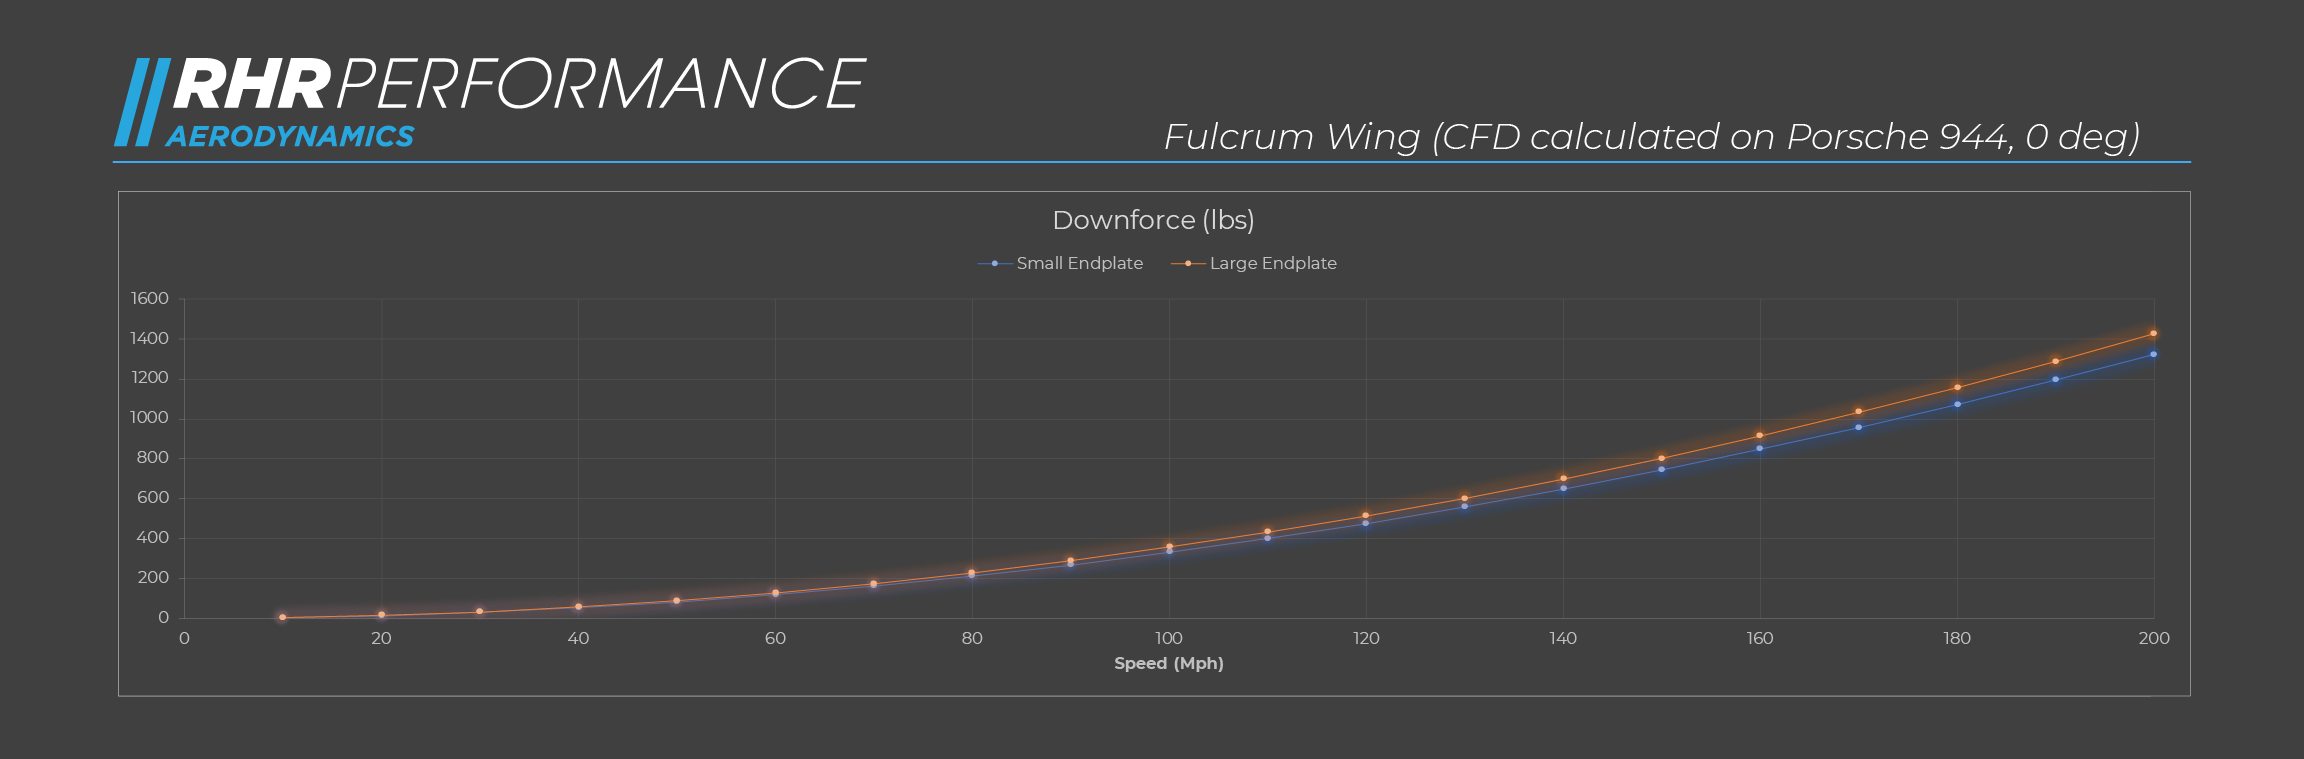 CFD Data for the Fulcrum Race Wing Endplates